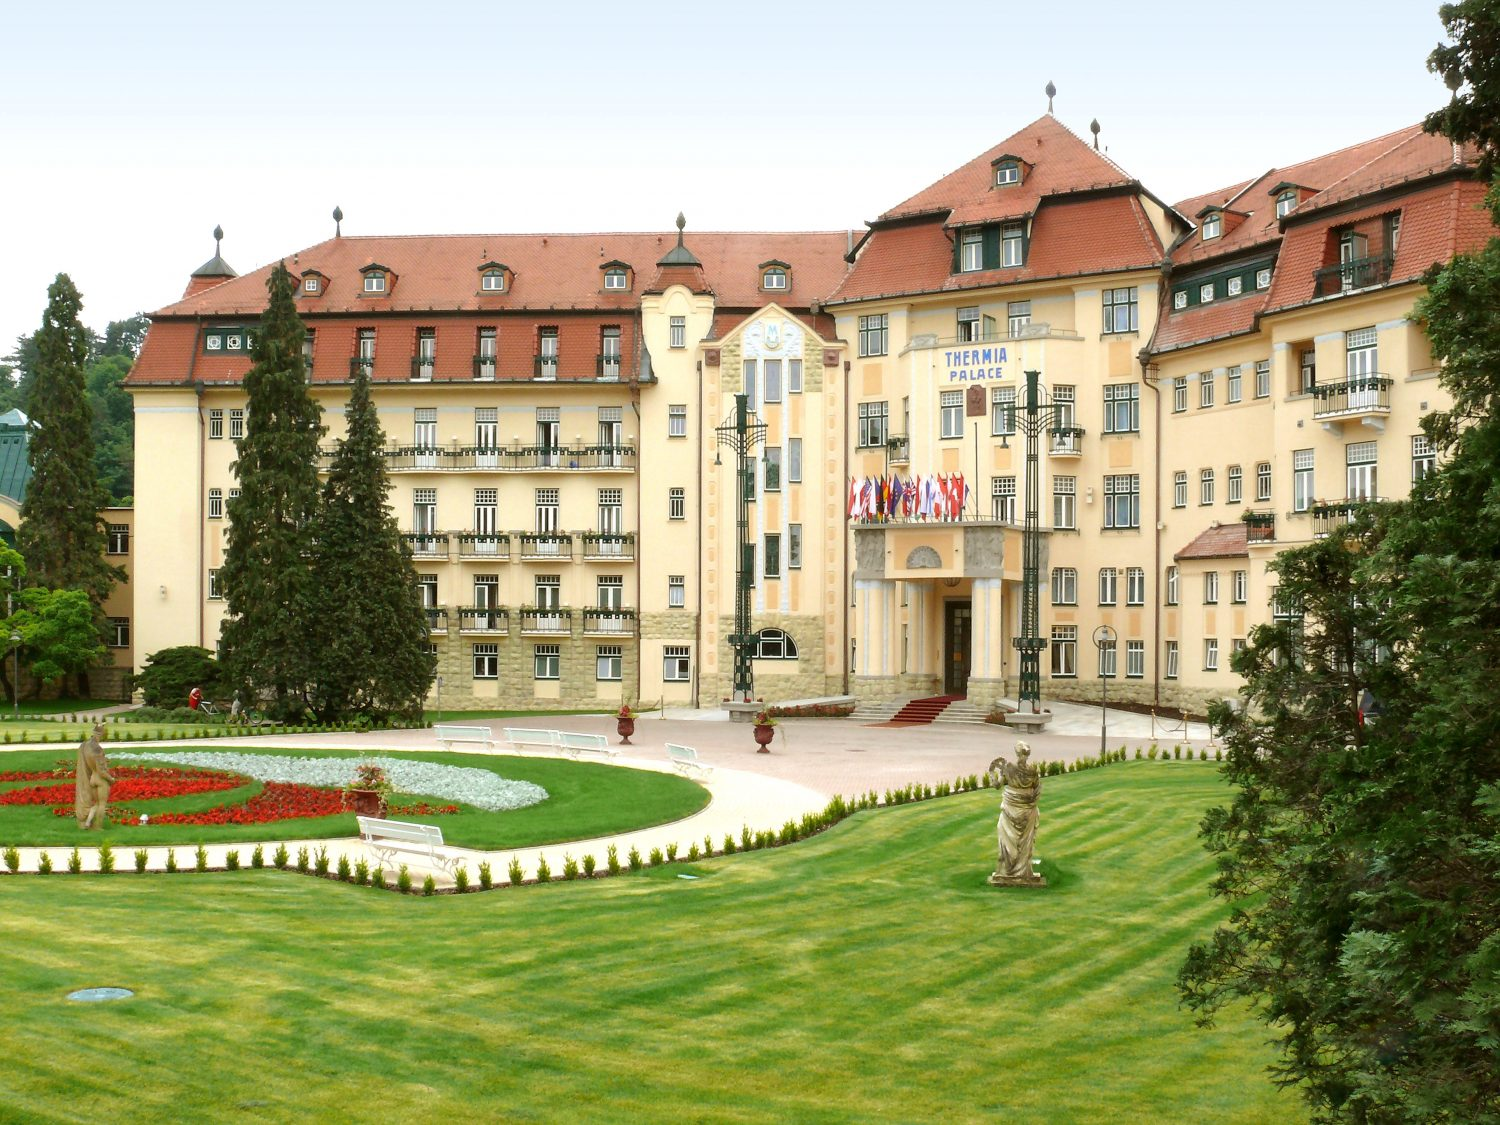 Spa Resort Thermia Palace, Piešťany (photo by Peter Fratrič)